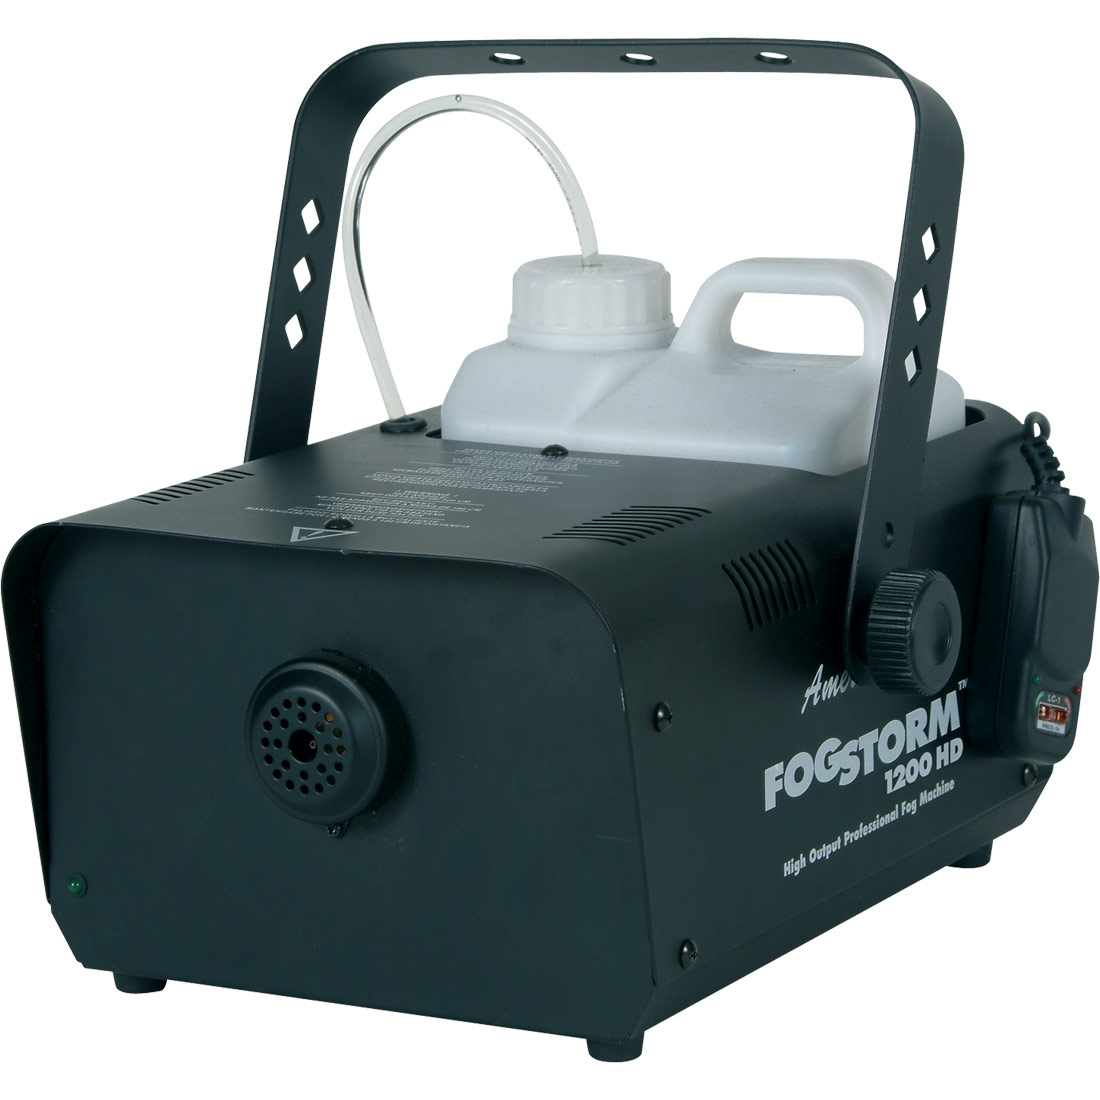 Fogstorm 1200HD - 1200W Fogmachine